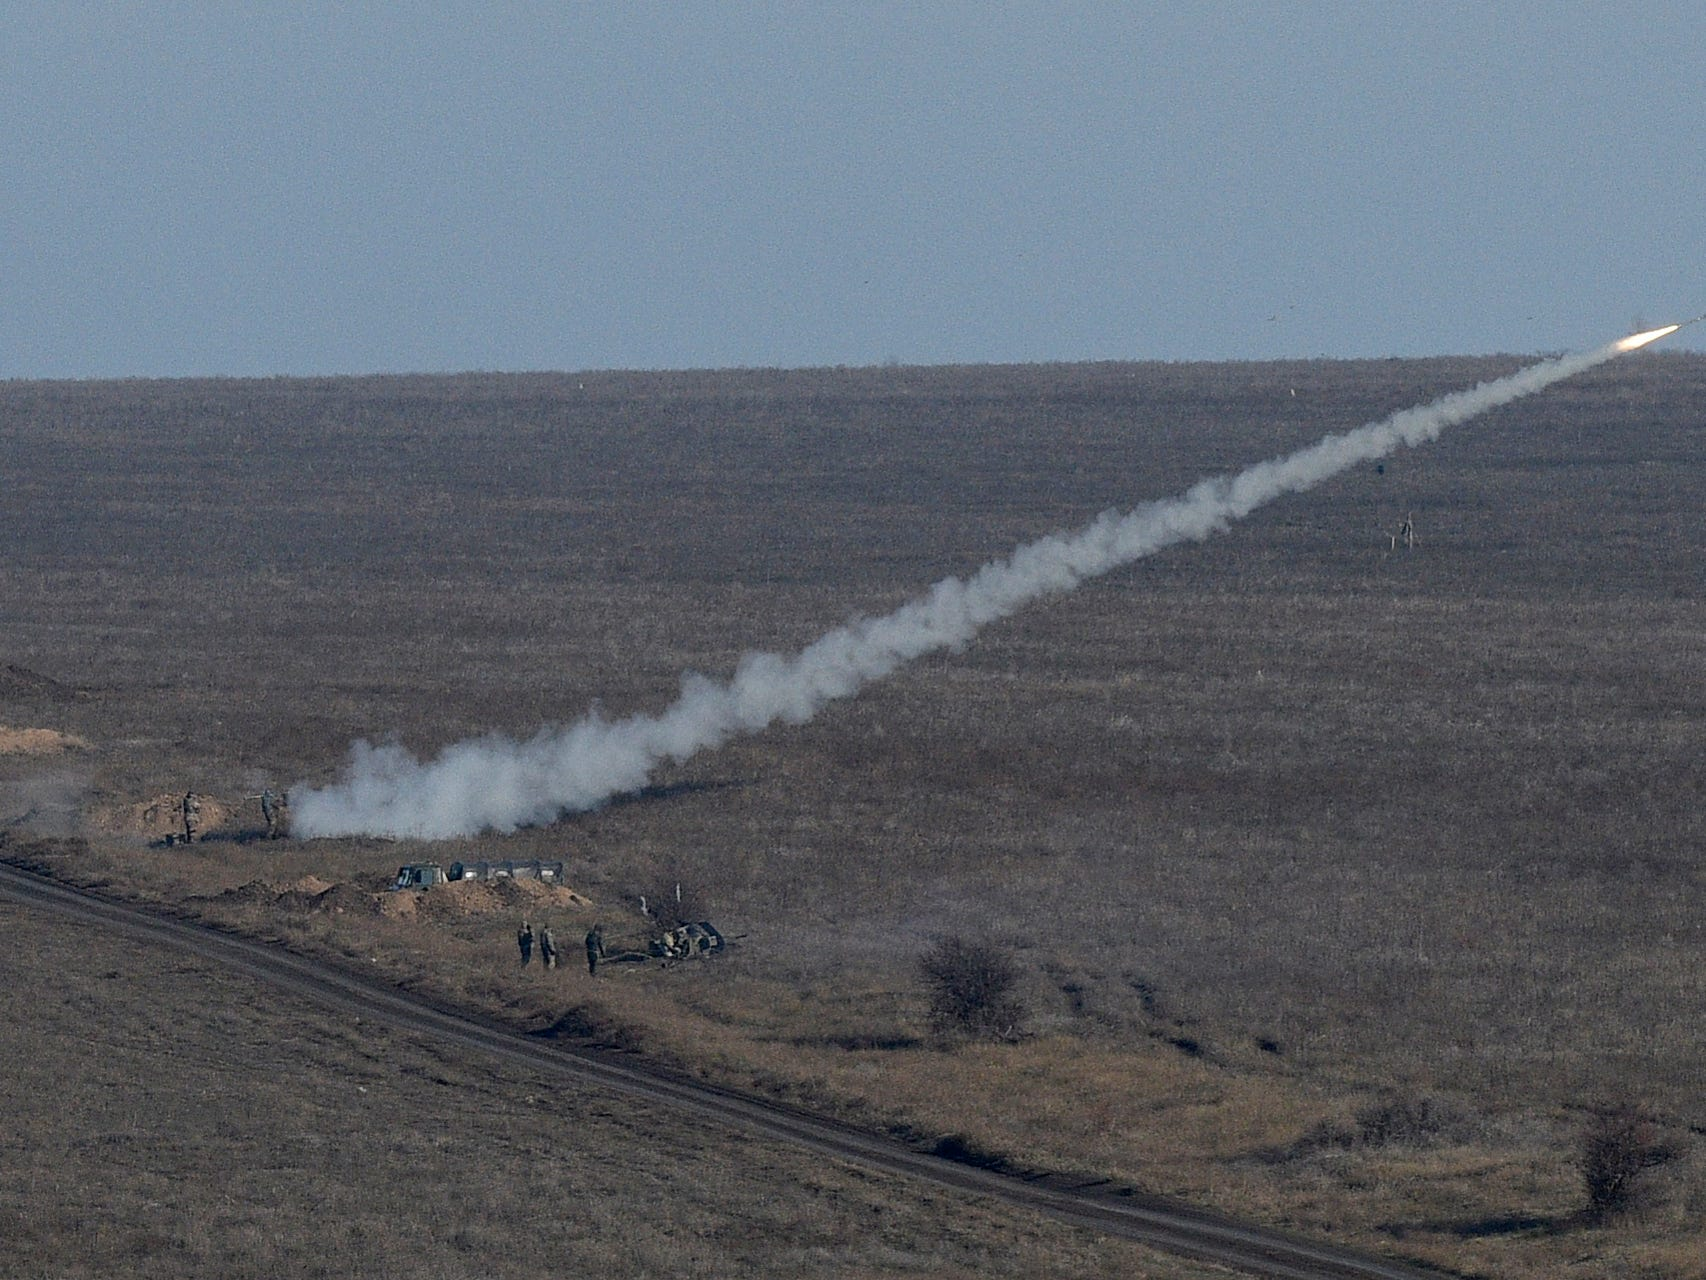 Ukrainian soldiers launch an anti-aircraft rocket during military exercises near Urzuf, south coast of Azov sea, eastern Ukraine, Thursday, Nov. 29, 2018. Ukraine put its military forces on high combat alert and announced martial law this week after Russian border guards fired on and seized three Ukrainian ships in the Black Sea.